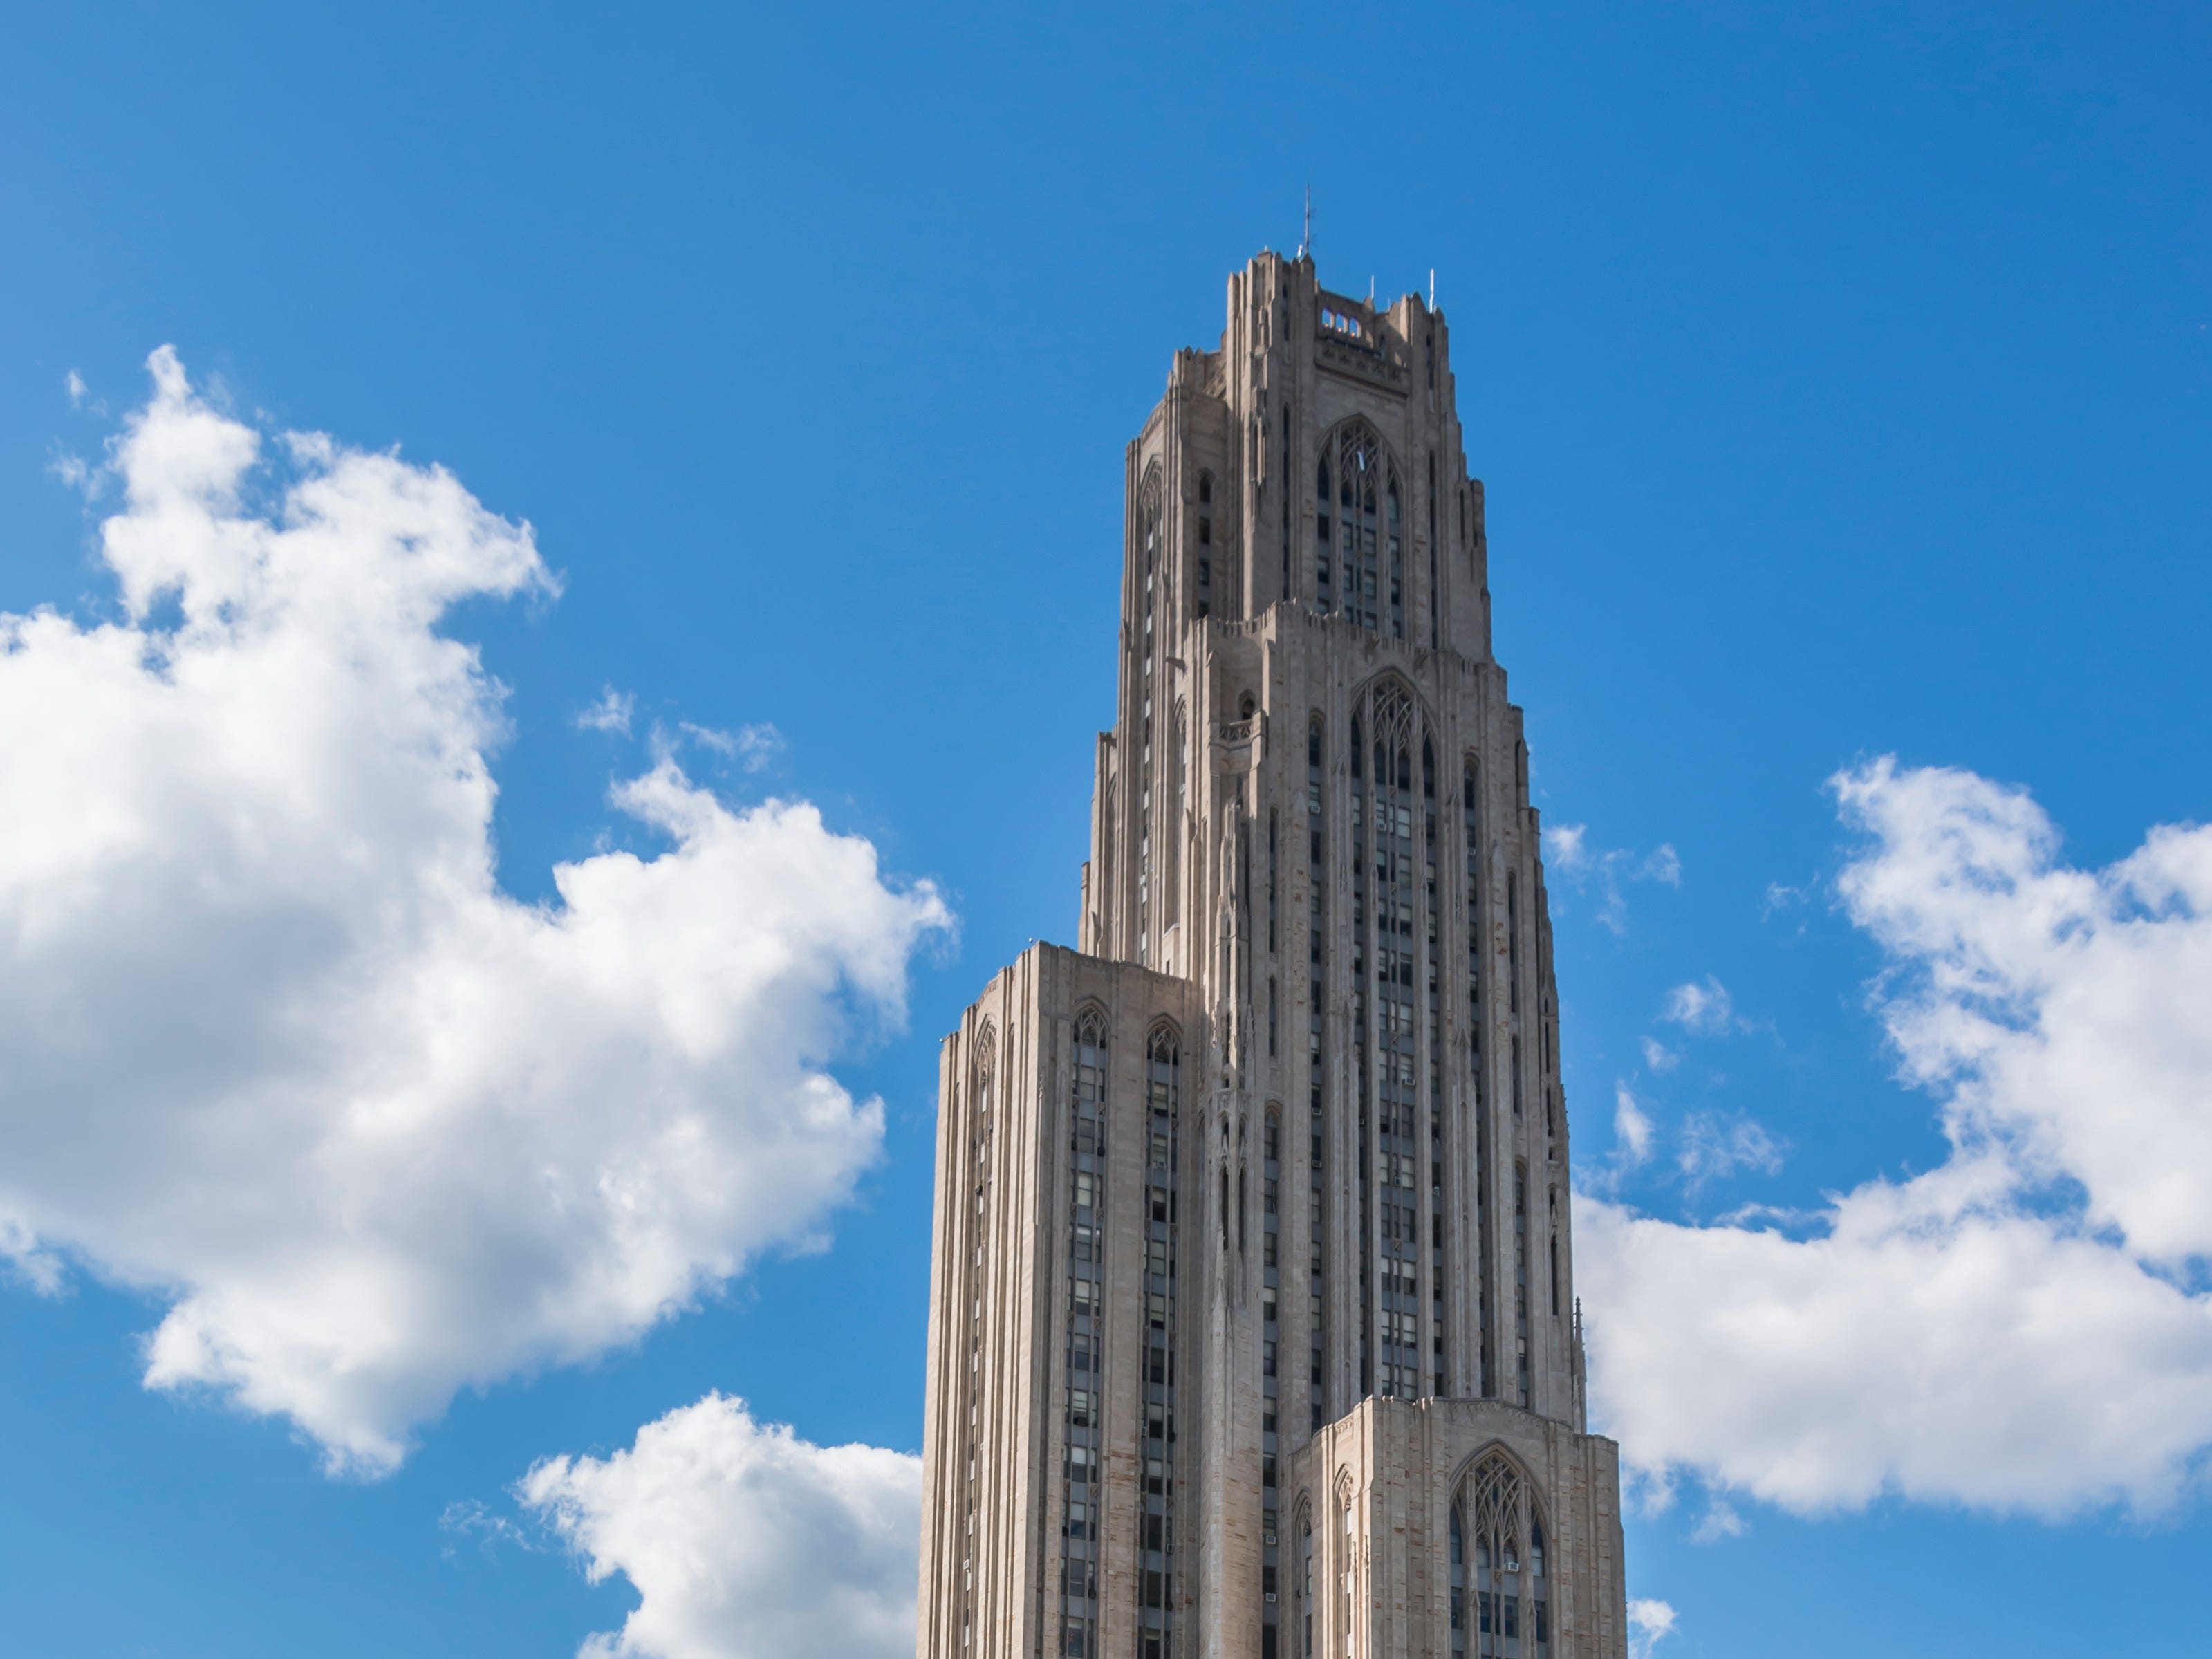 Pennsylvania: The Cathedral of Learning is a 42-story, Gothic revival-style skyscraper on the University of Pittsburgh campus. At 535 feet tall, it is listed on the National Register of Historic Places.